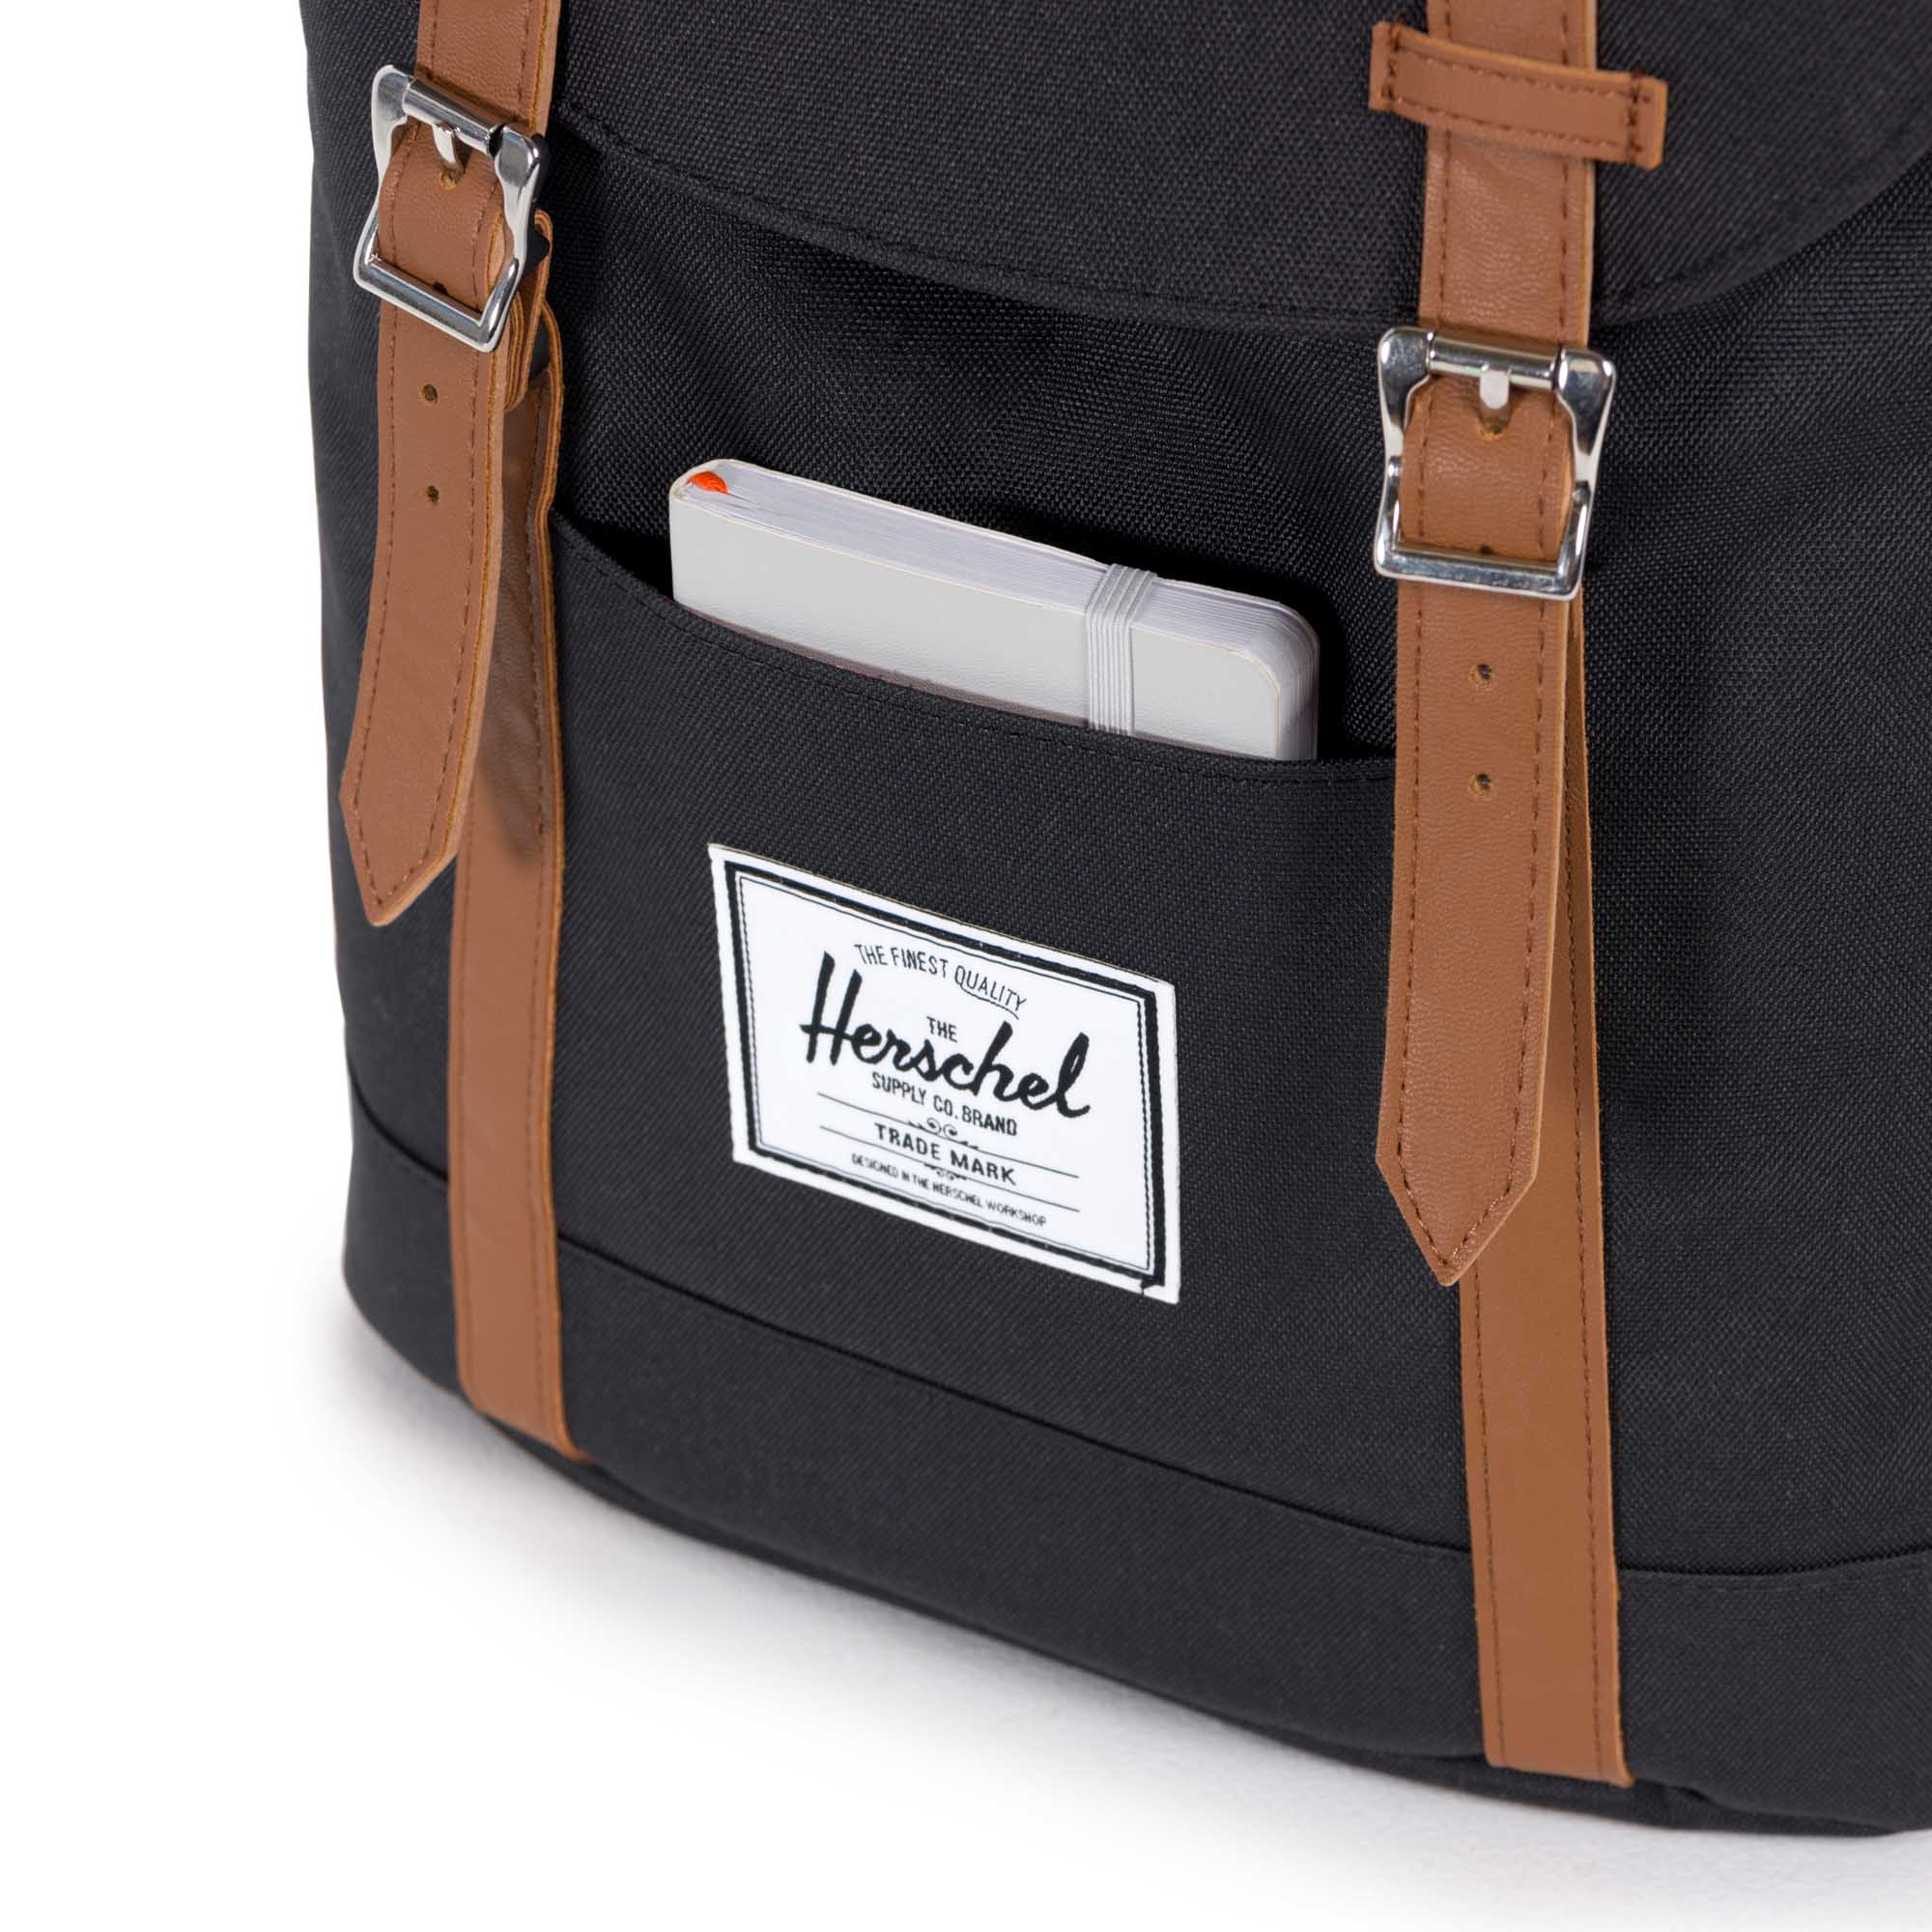 7d471177c930 Herschel Retreat Backpack Offset Collection - ThinkEmpire.com ...